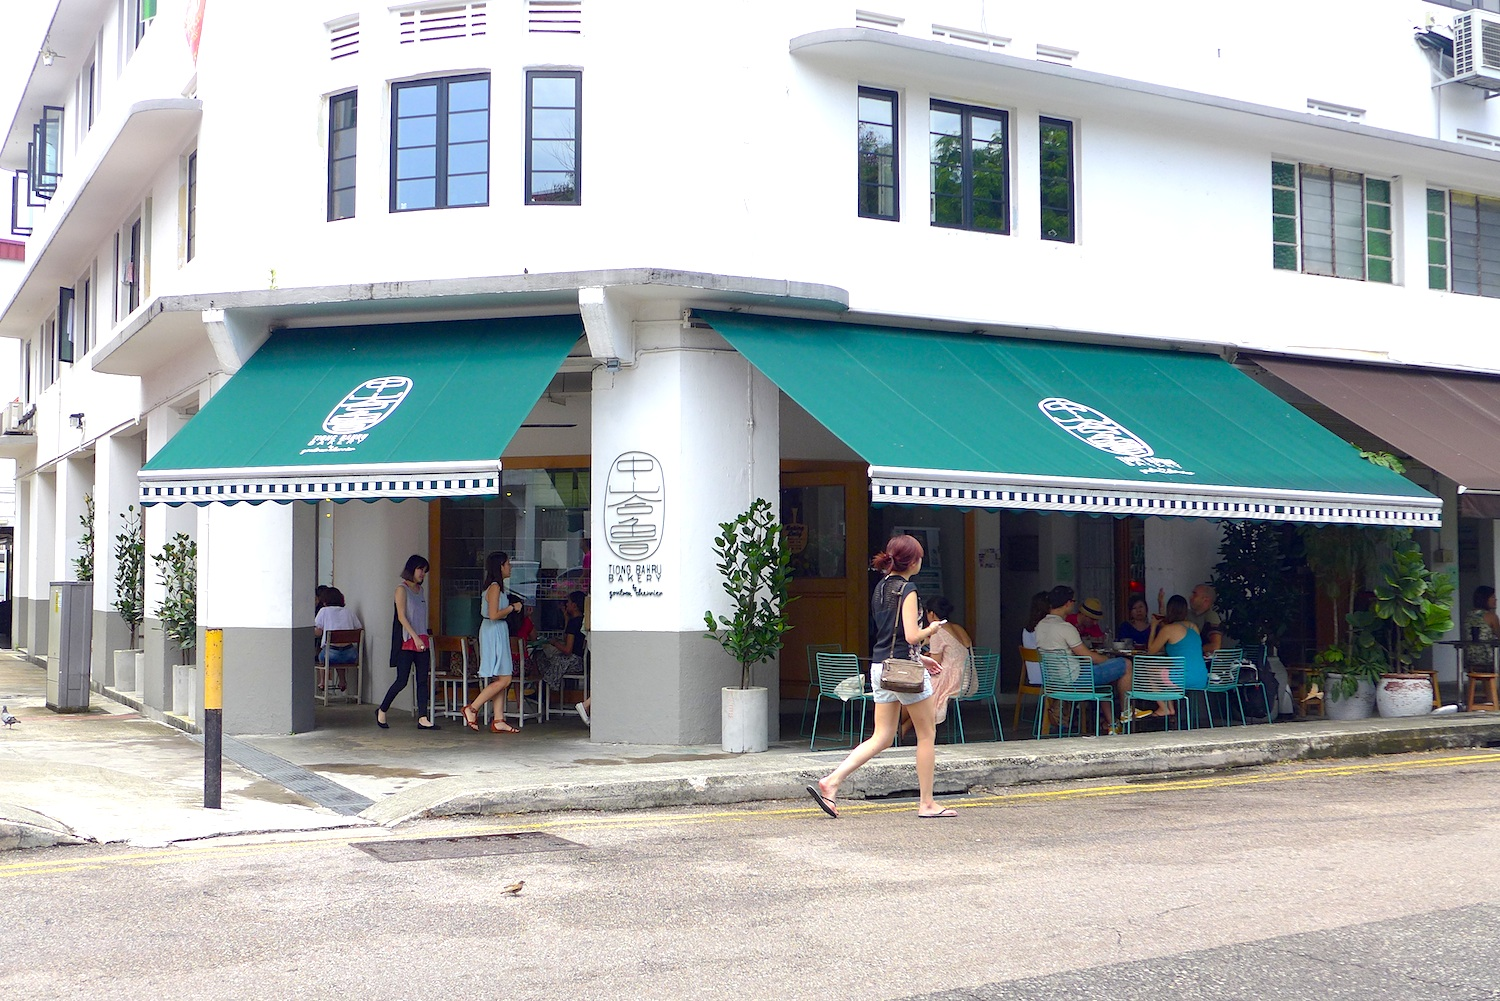 Facade of the Tiong Bahru Bakery.